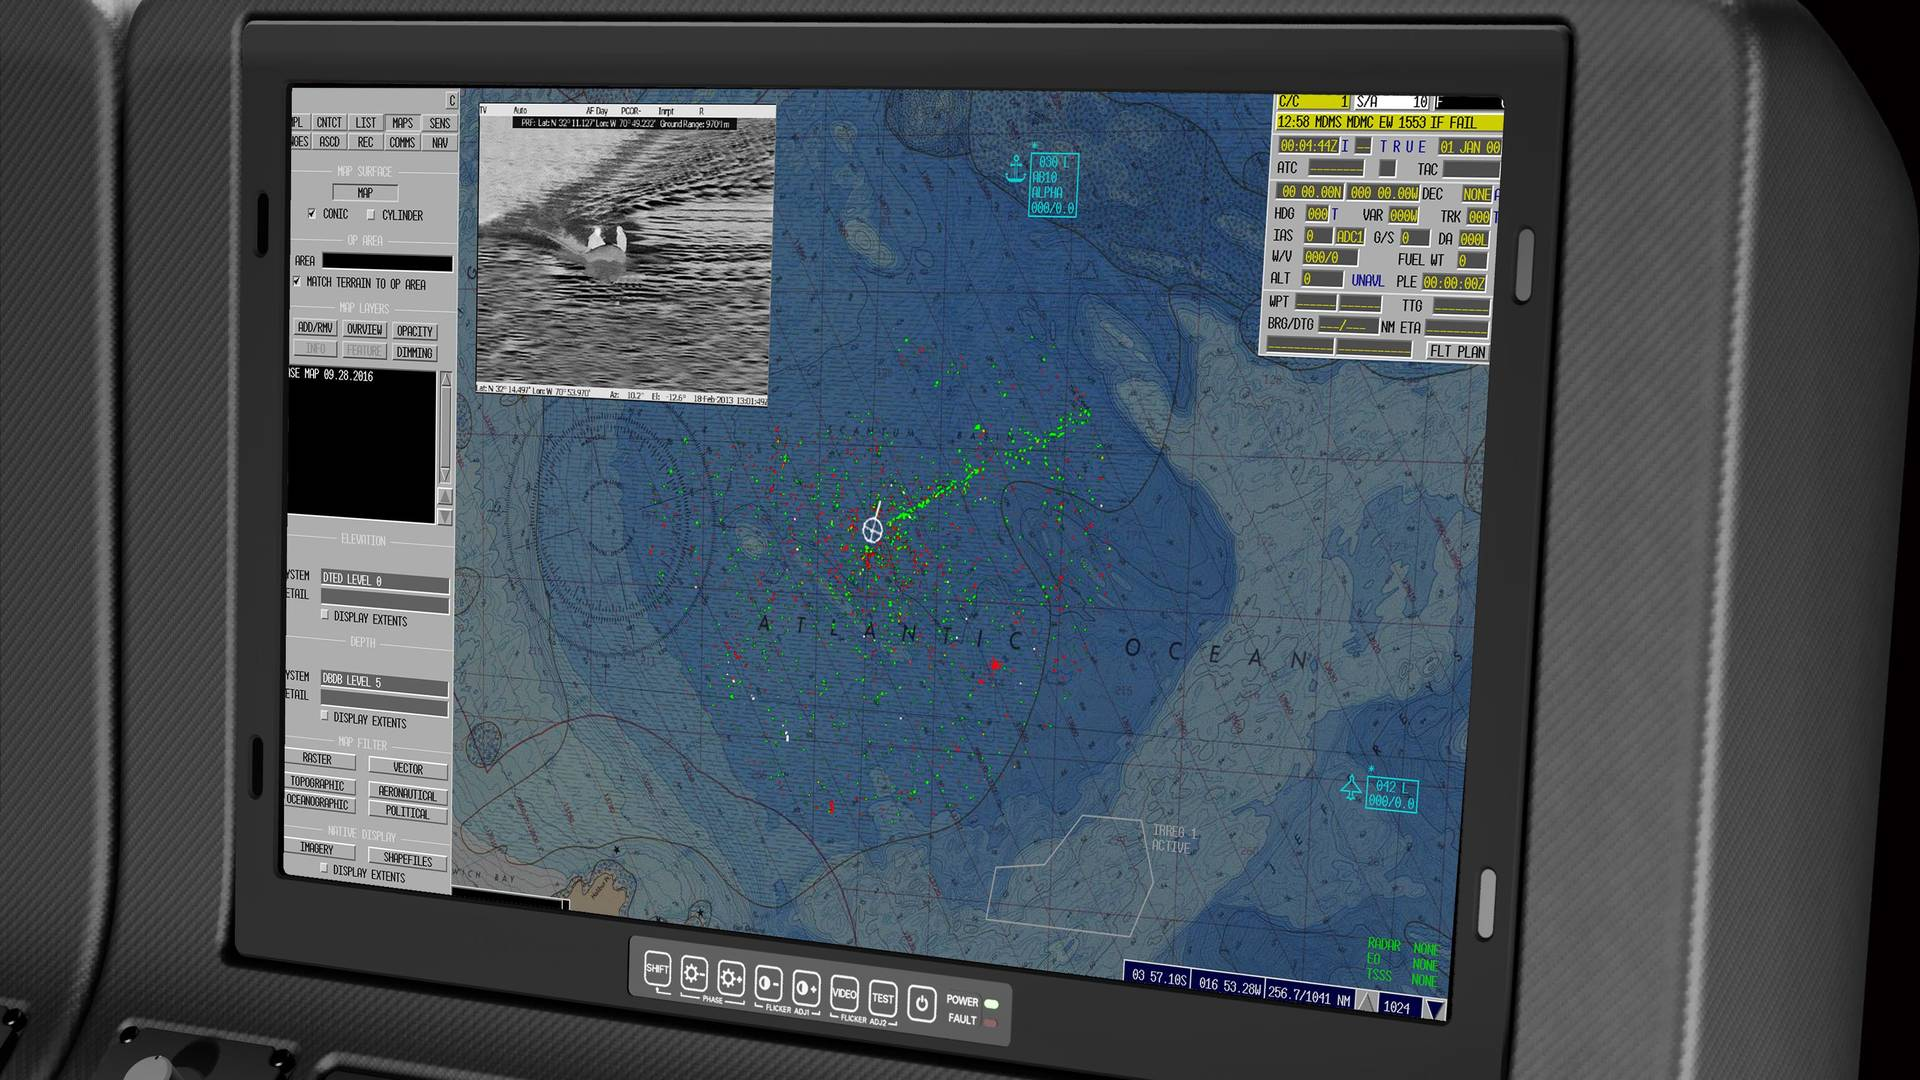 Data Management Systems (DMS) - General Dynamics Mission